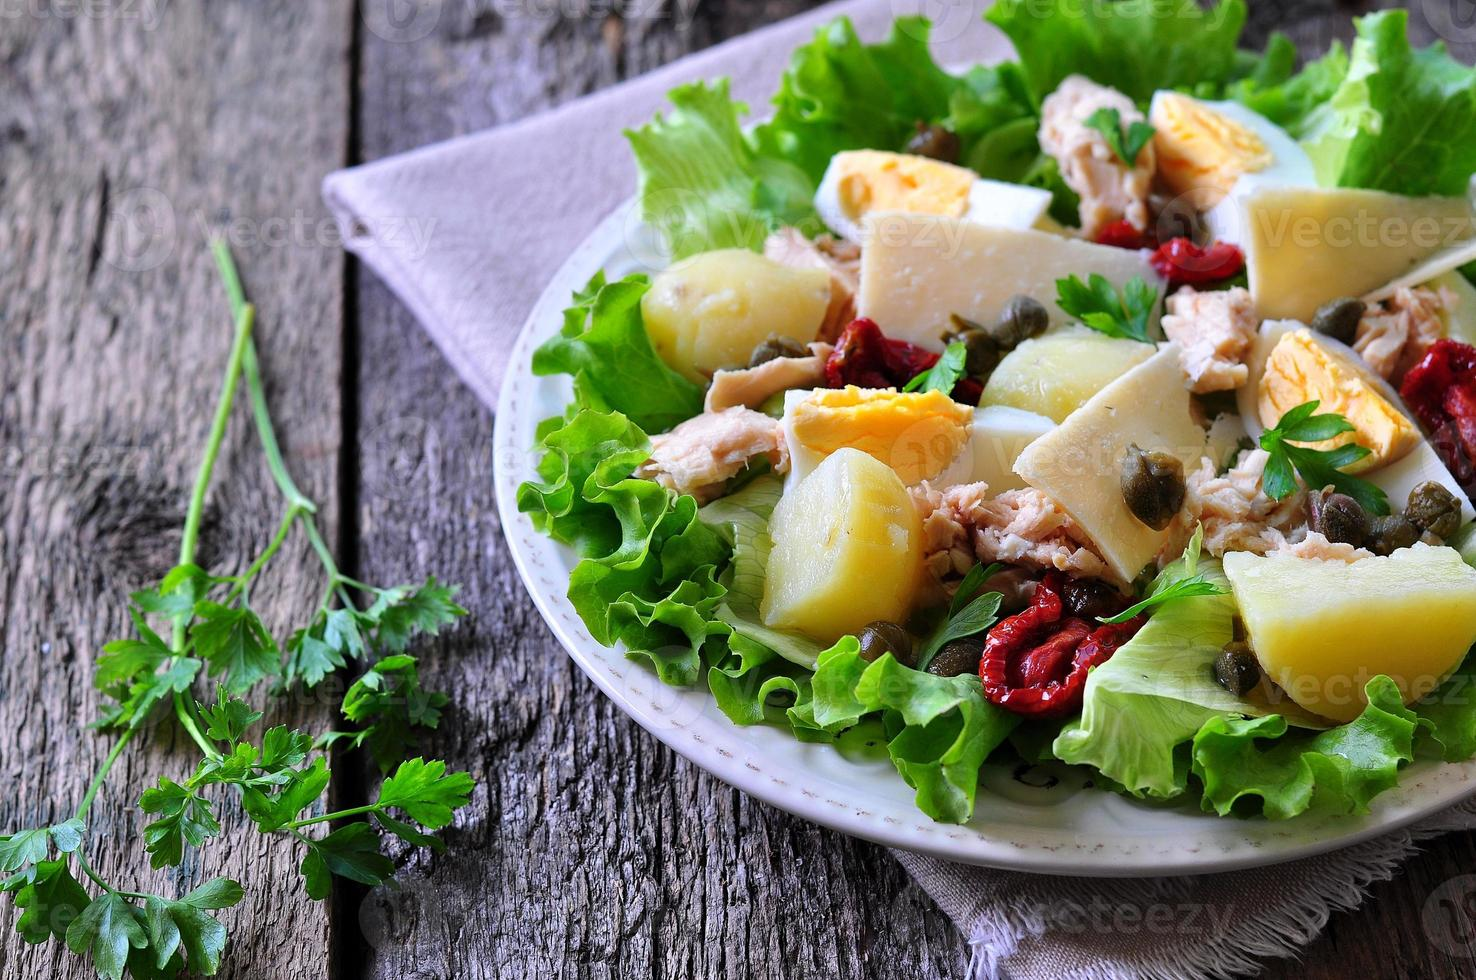 salad of lettuce, iceberg lettuce, with canned tuna, dried tomatoes photo